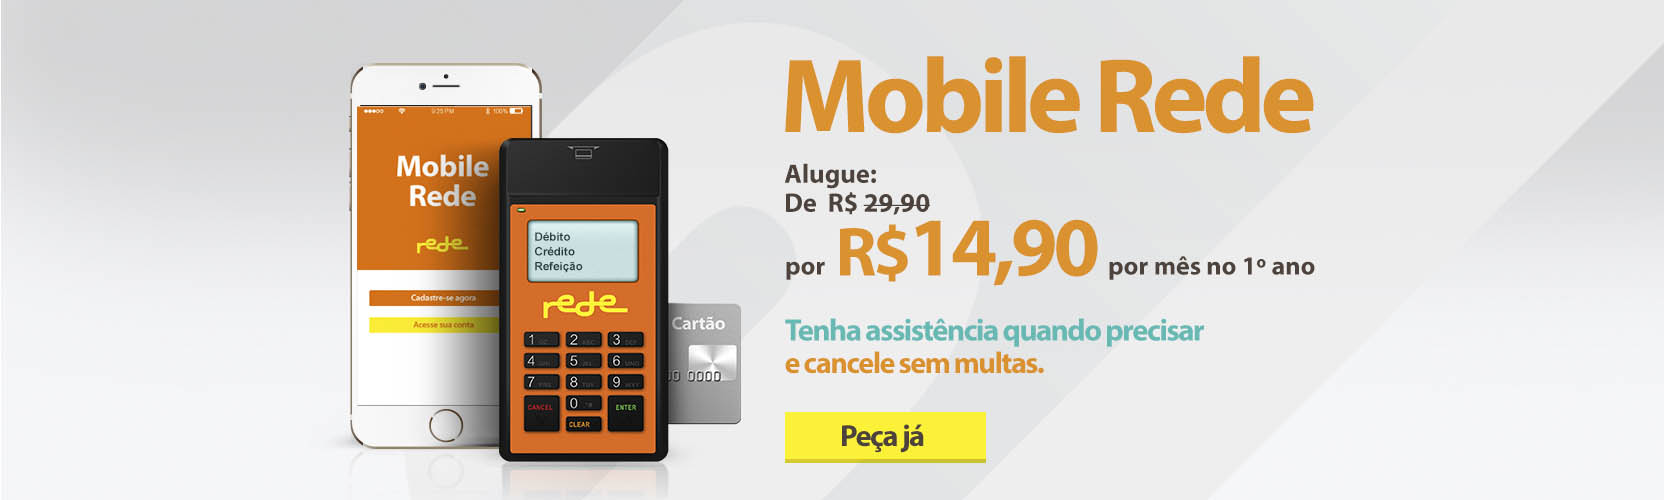 Mobile Rede